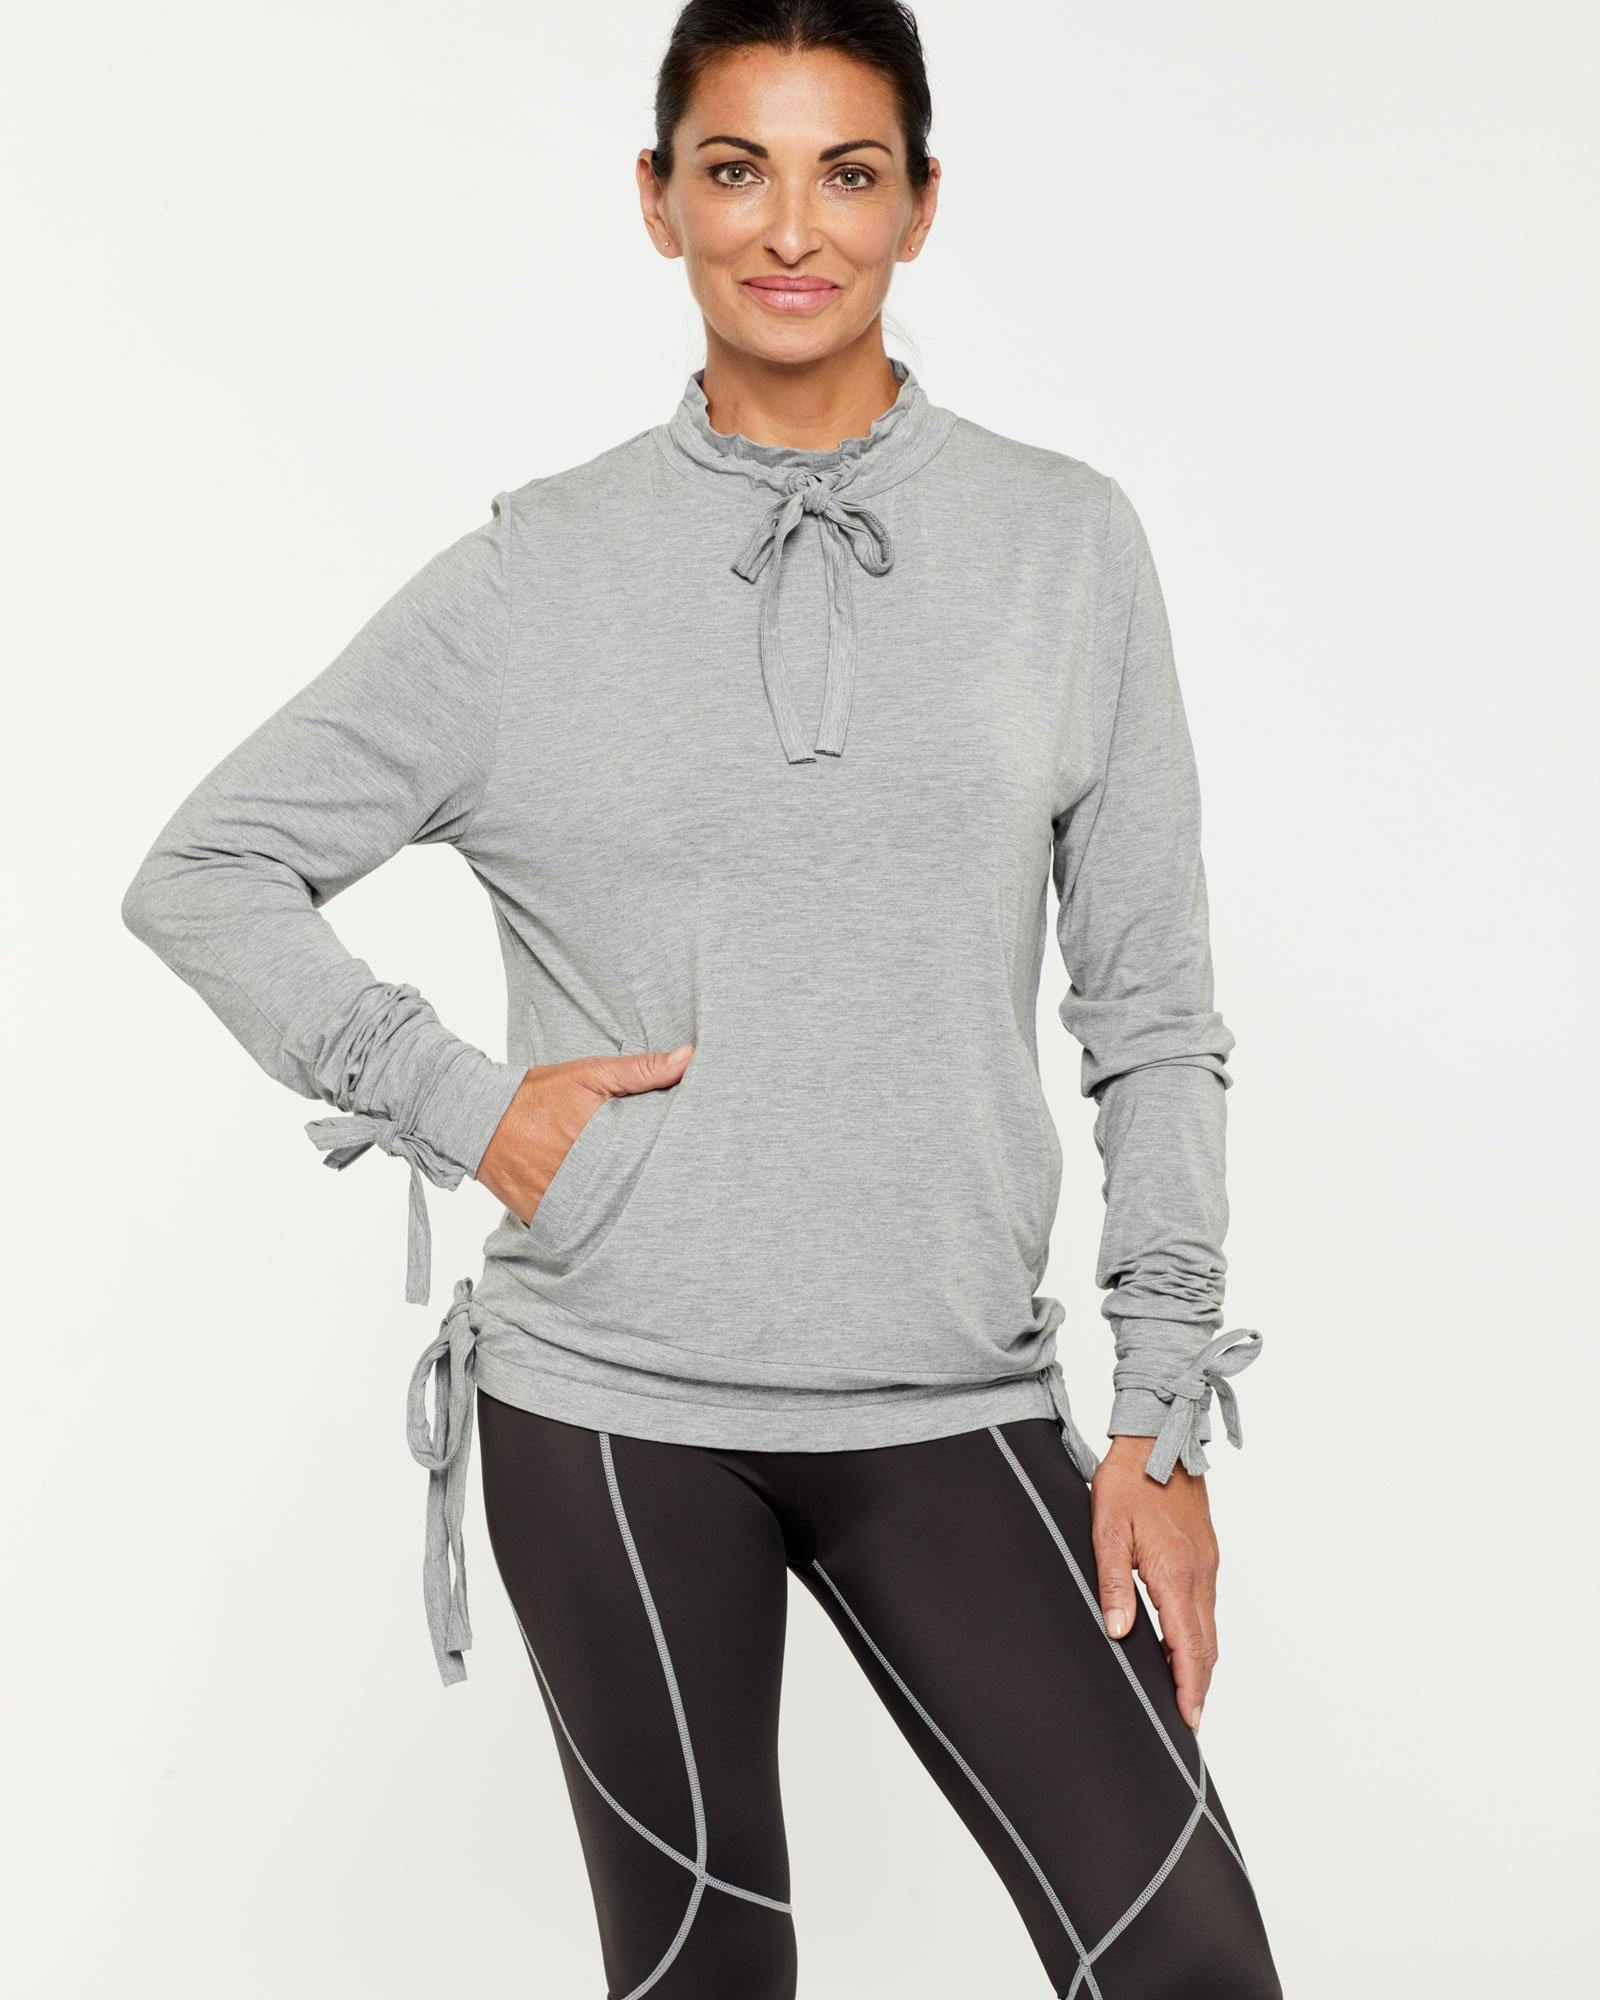 Steely Spinae long sleeve adjustable top with self ties, light grey, bamboo worn with Vastus mid waist full length legging, front view